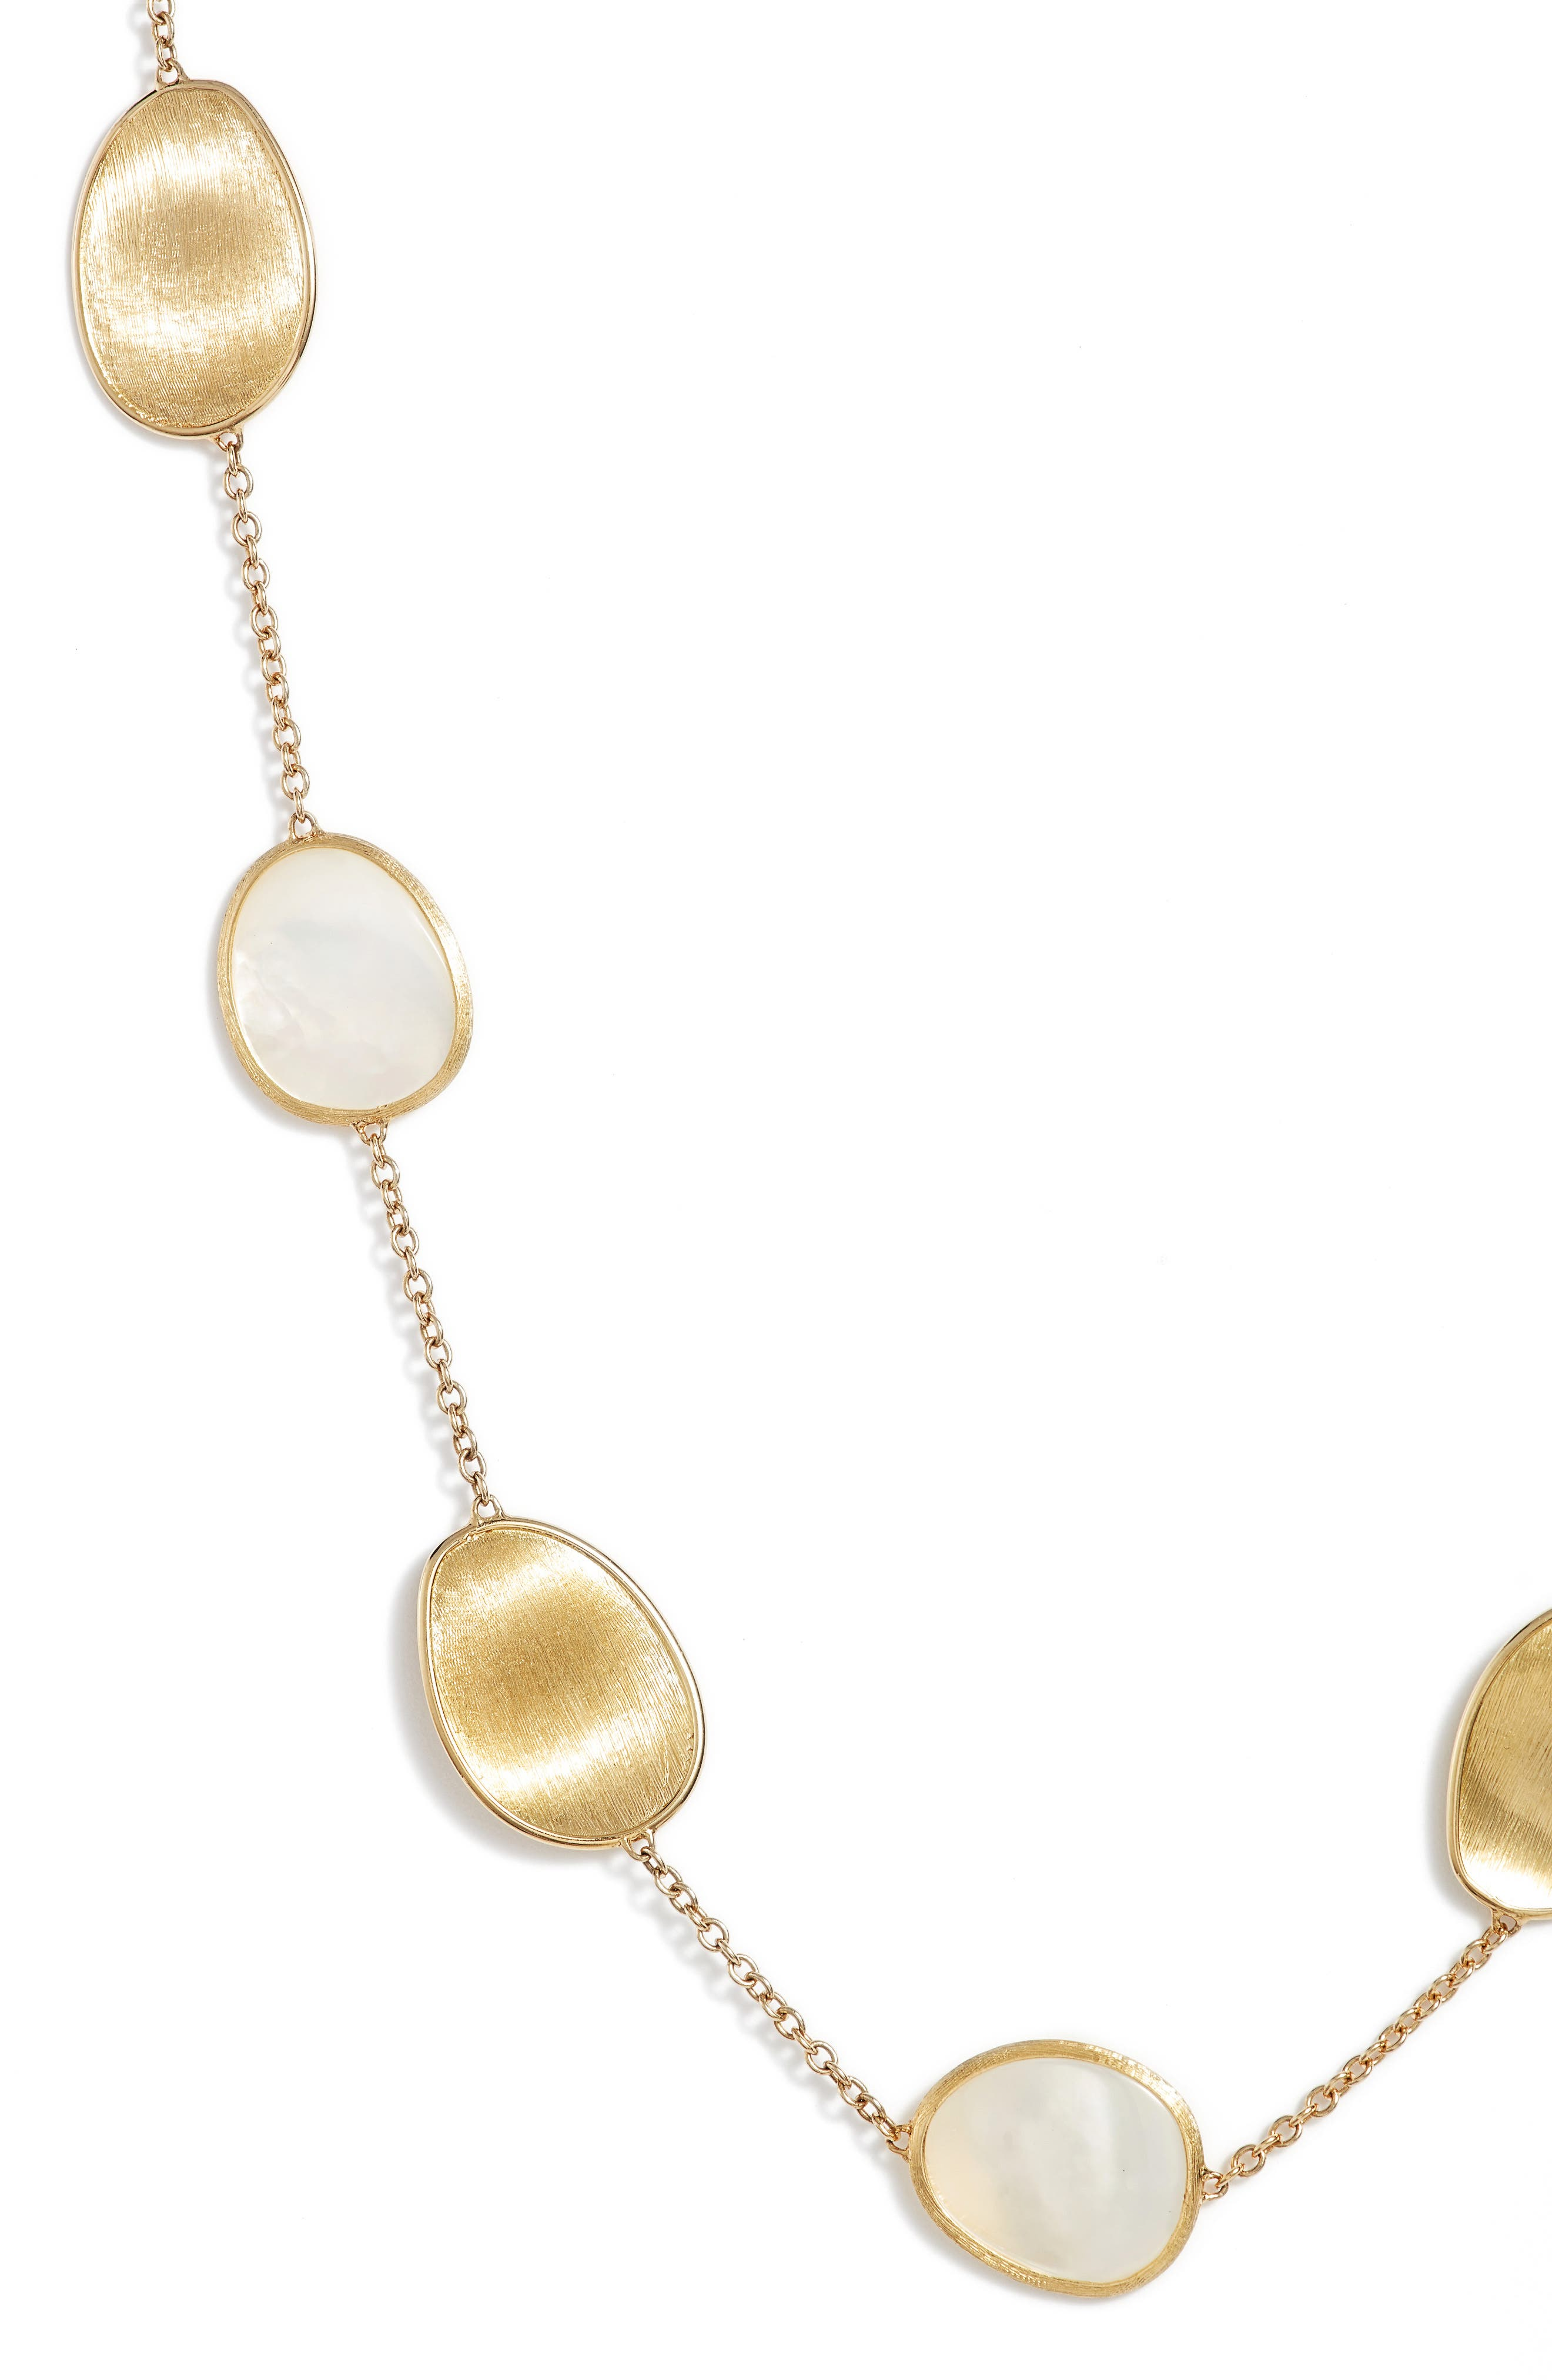 Lunaria Mother of Pearl Long Strand Necklace,                             Alternate thumbnail 2, color,                             WHITE MOTHER OF PEARL